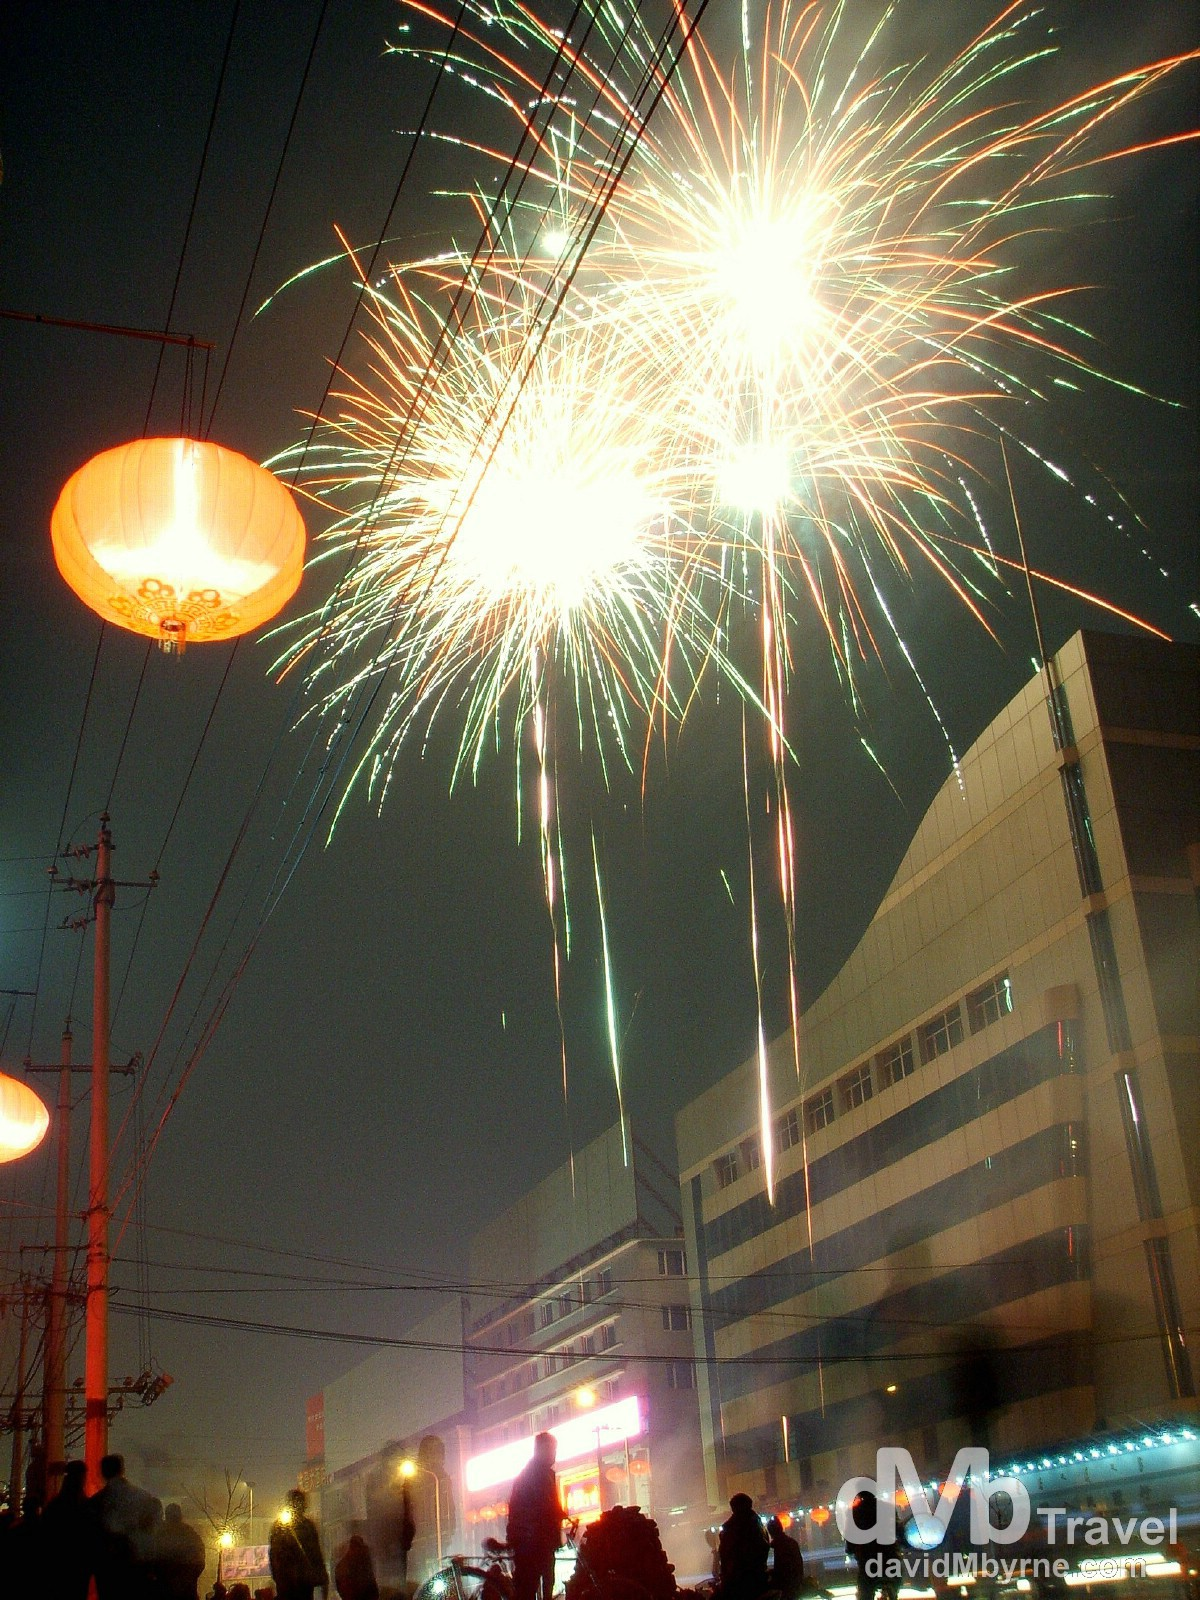 Chinese New Year celebration fireworks on the streets of Hohhot, Inner Mongolia, China. February 12, 2006.